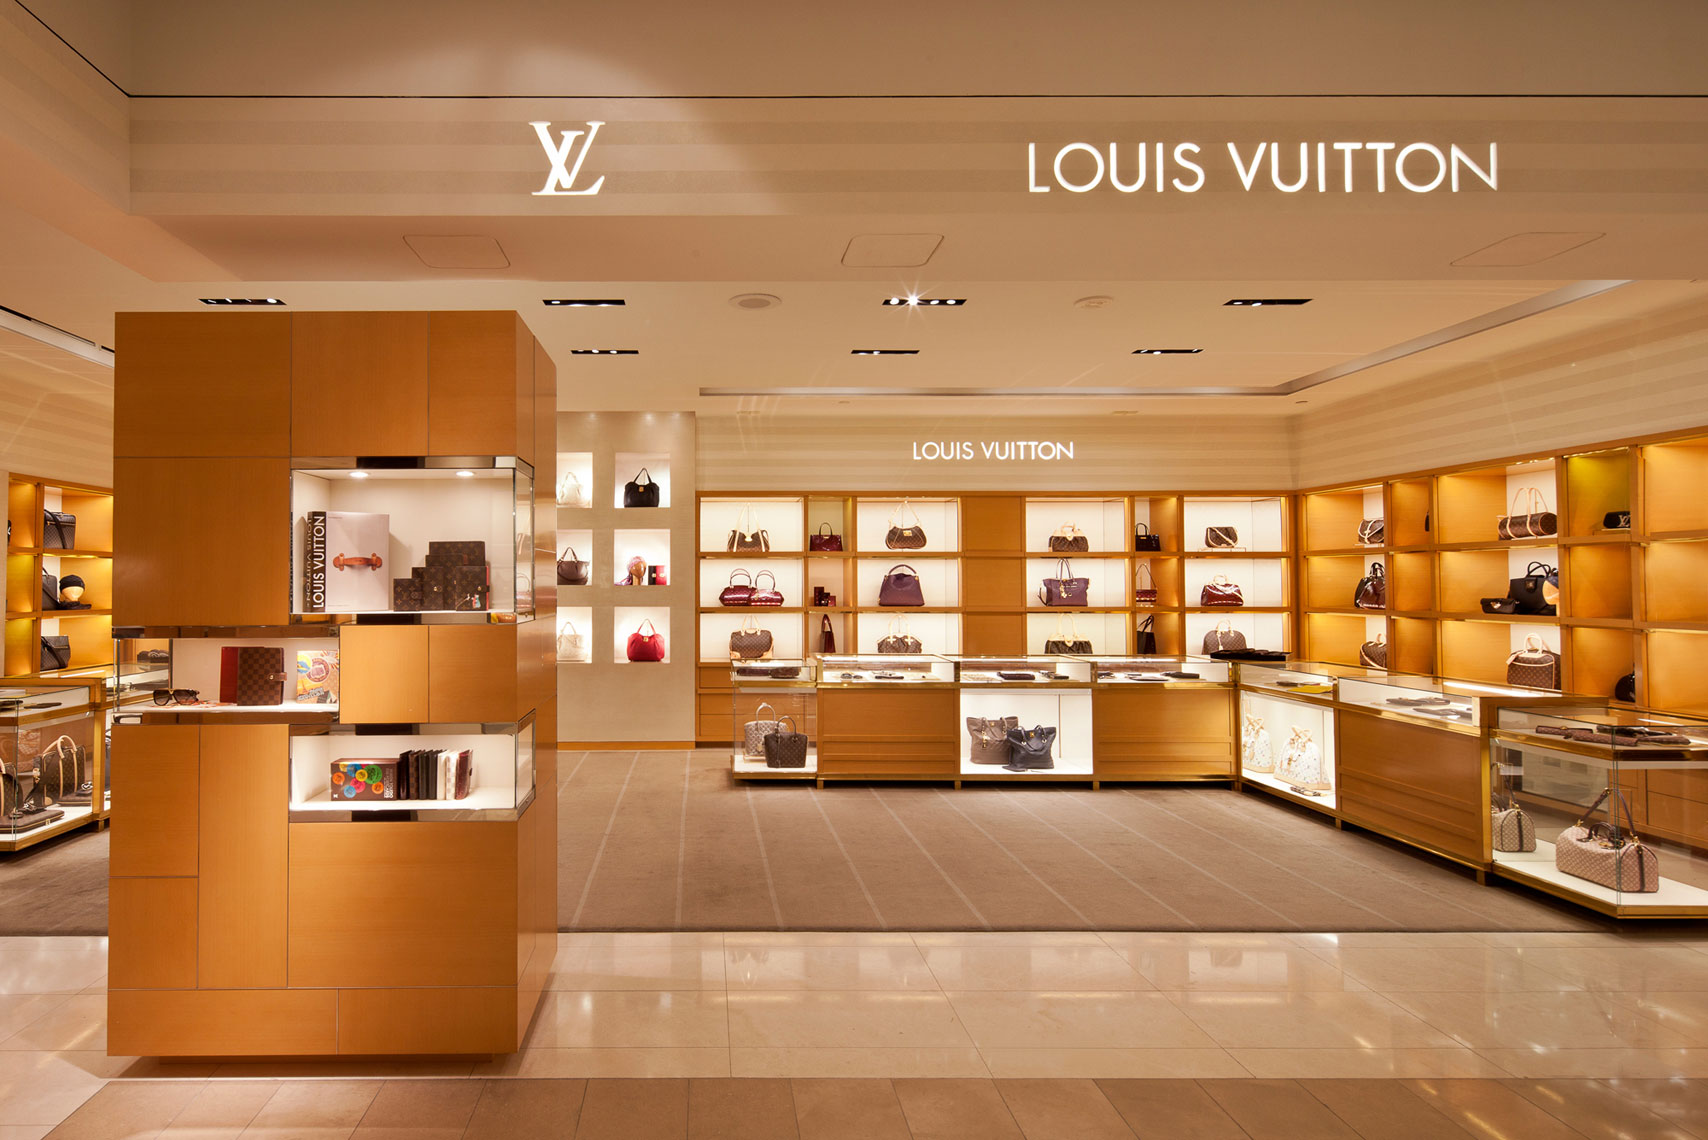 jeff-green-resort-retail-interiors-louis-vuitton-store